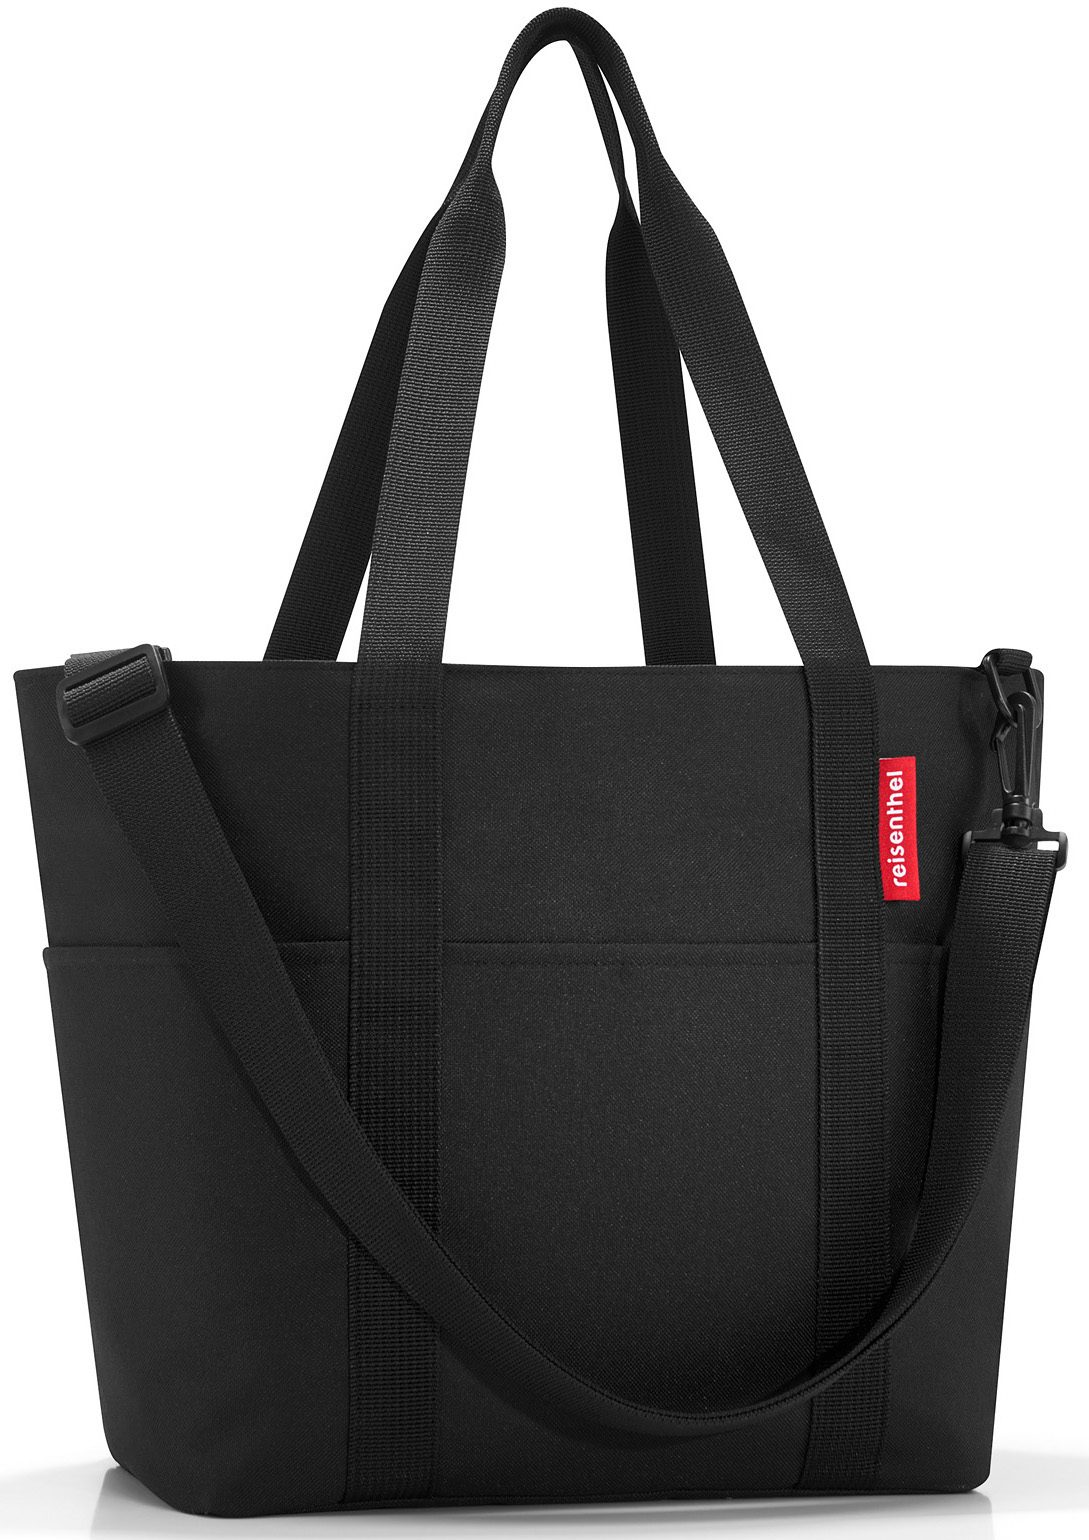 reisenthel® Umhängetasche black, »multibag«